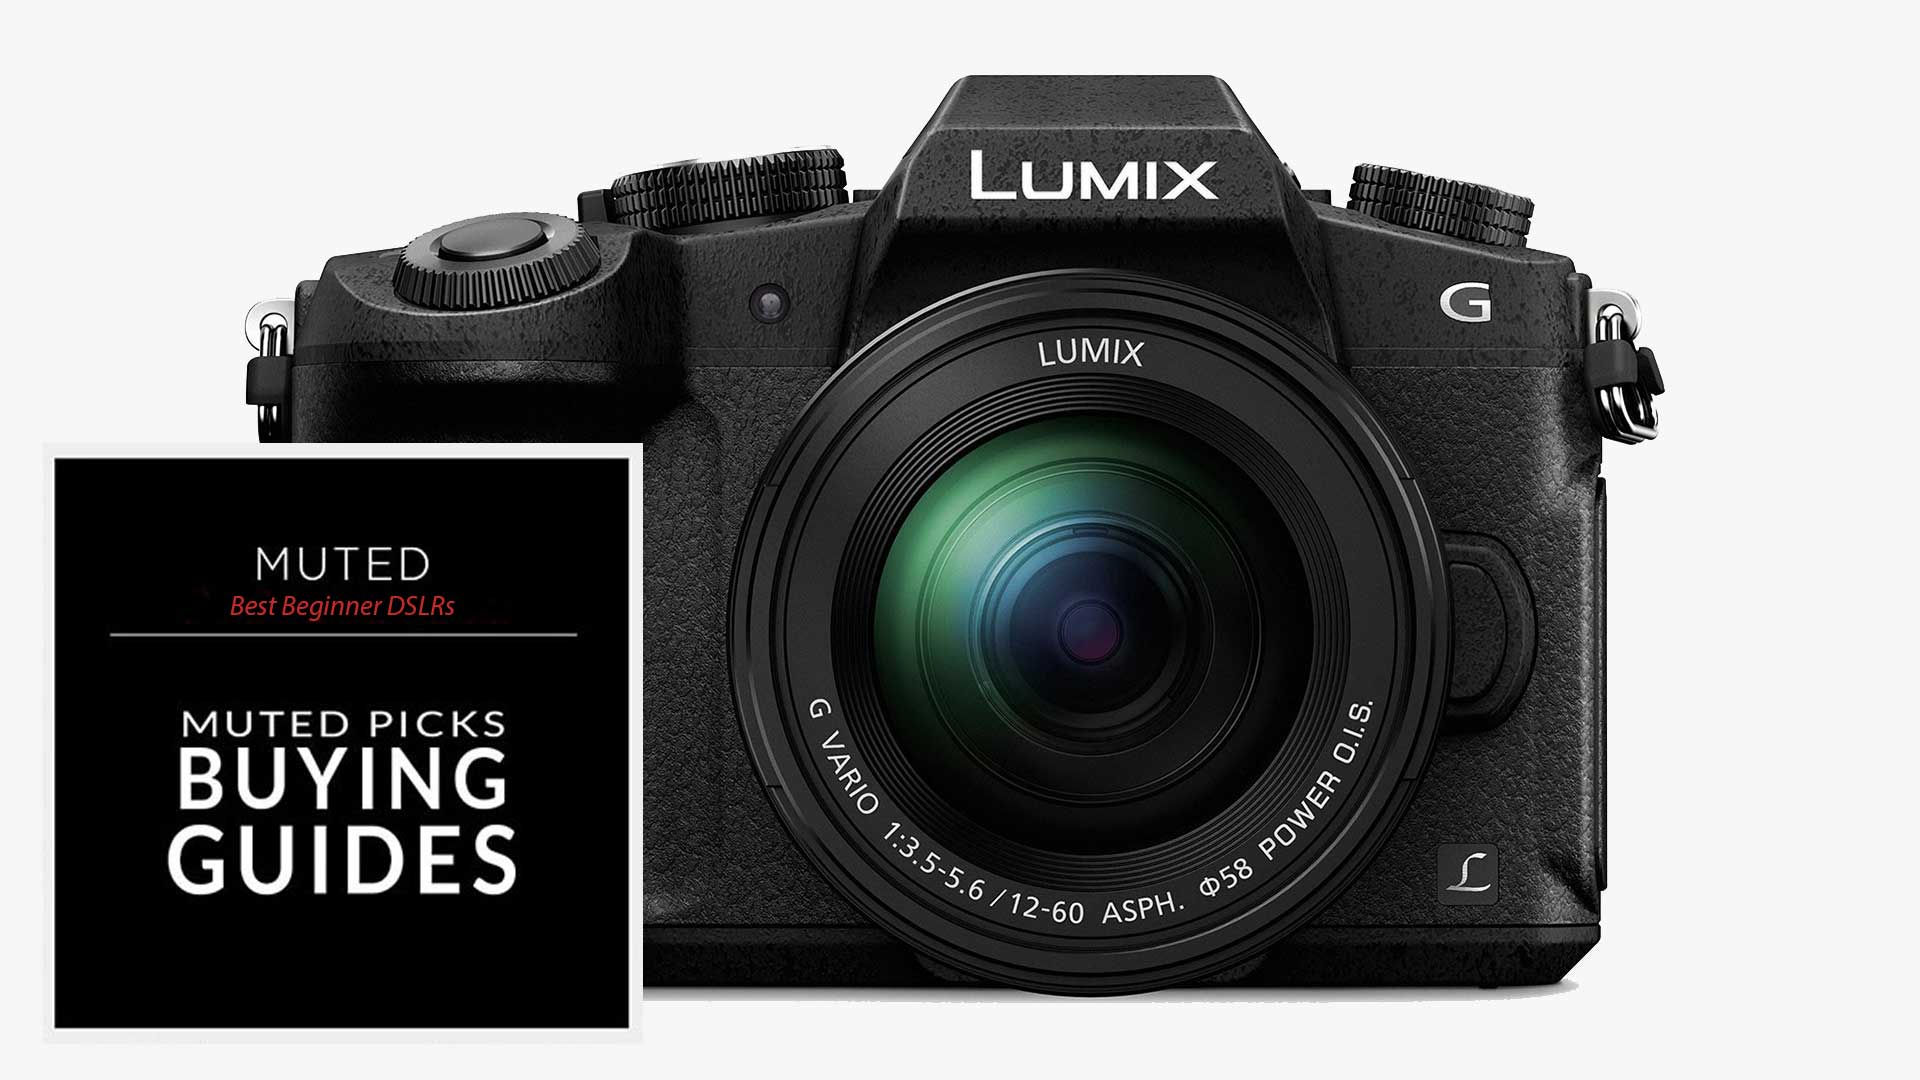 Best Entry Level DSLRs for Beginners